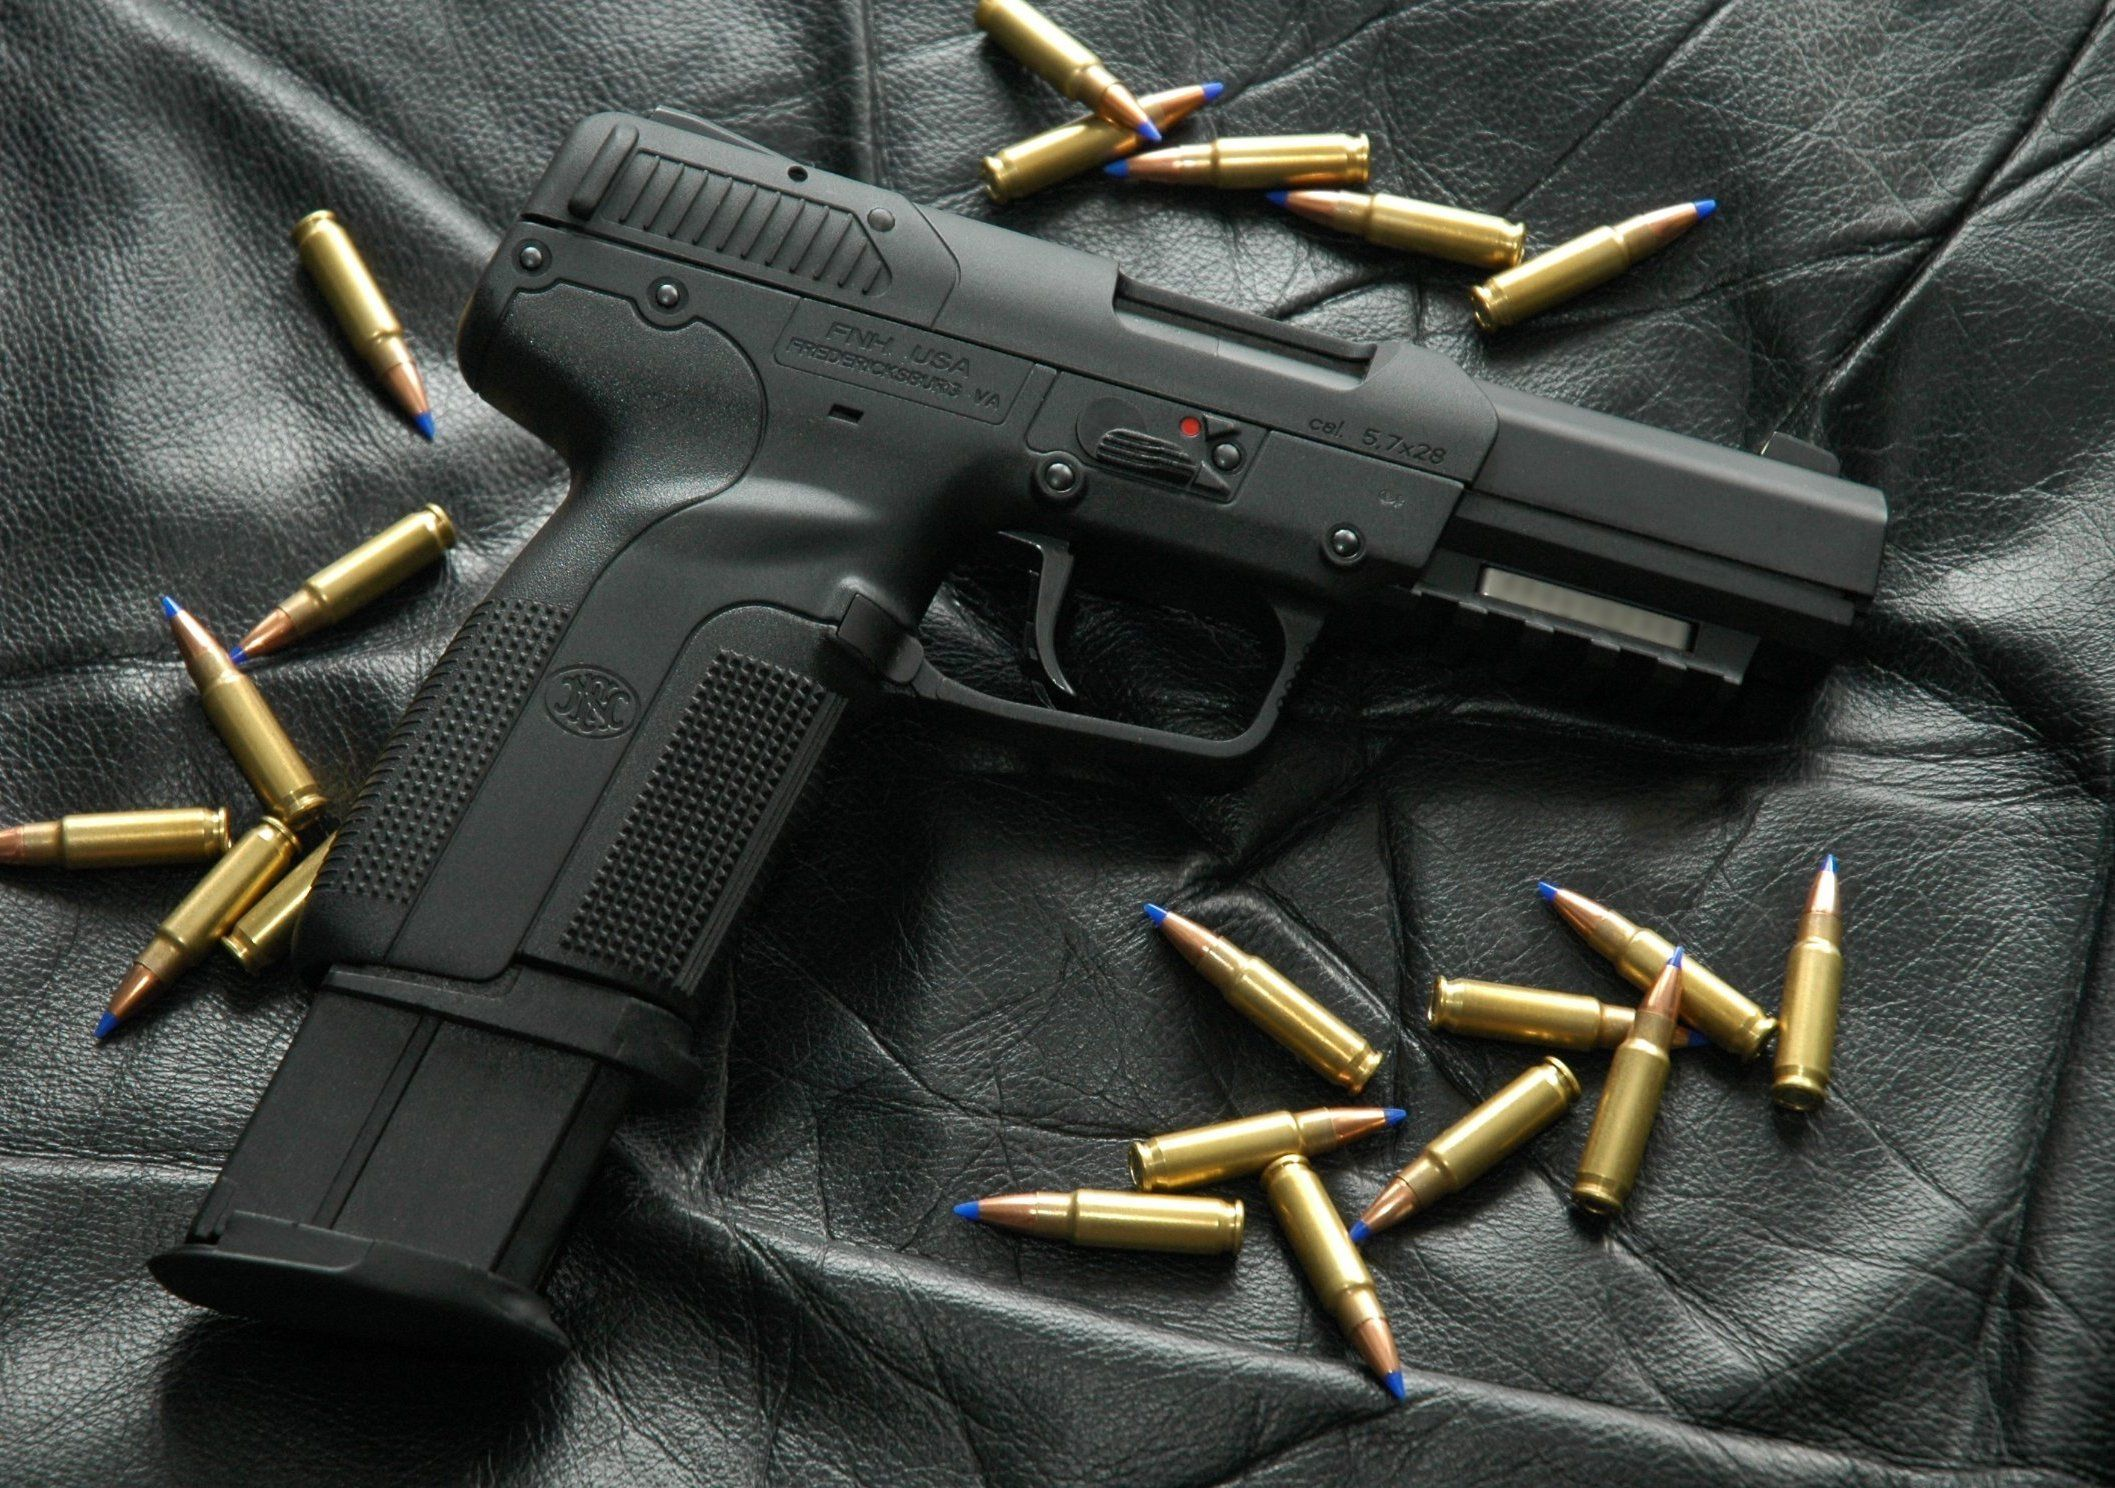 FN 'Five-seveN' - I'd choose one of these over both the 9mm and .45 www.youtube.com/c ...